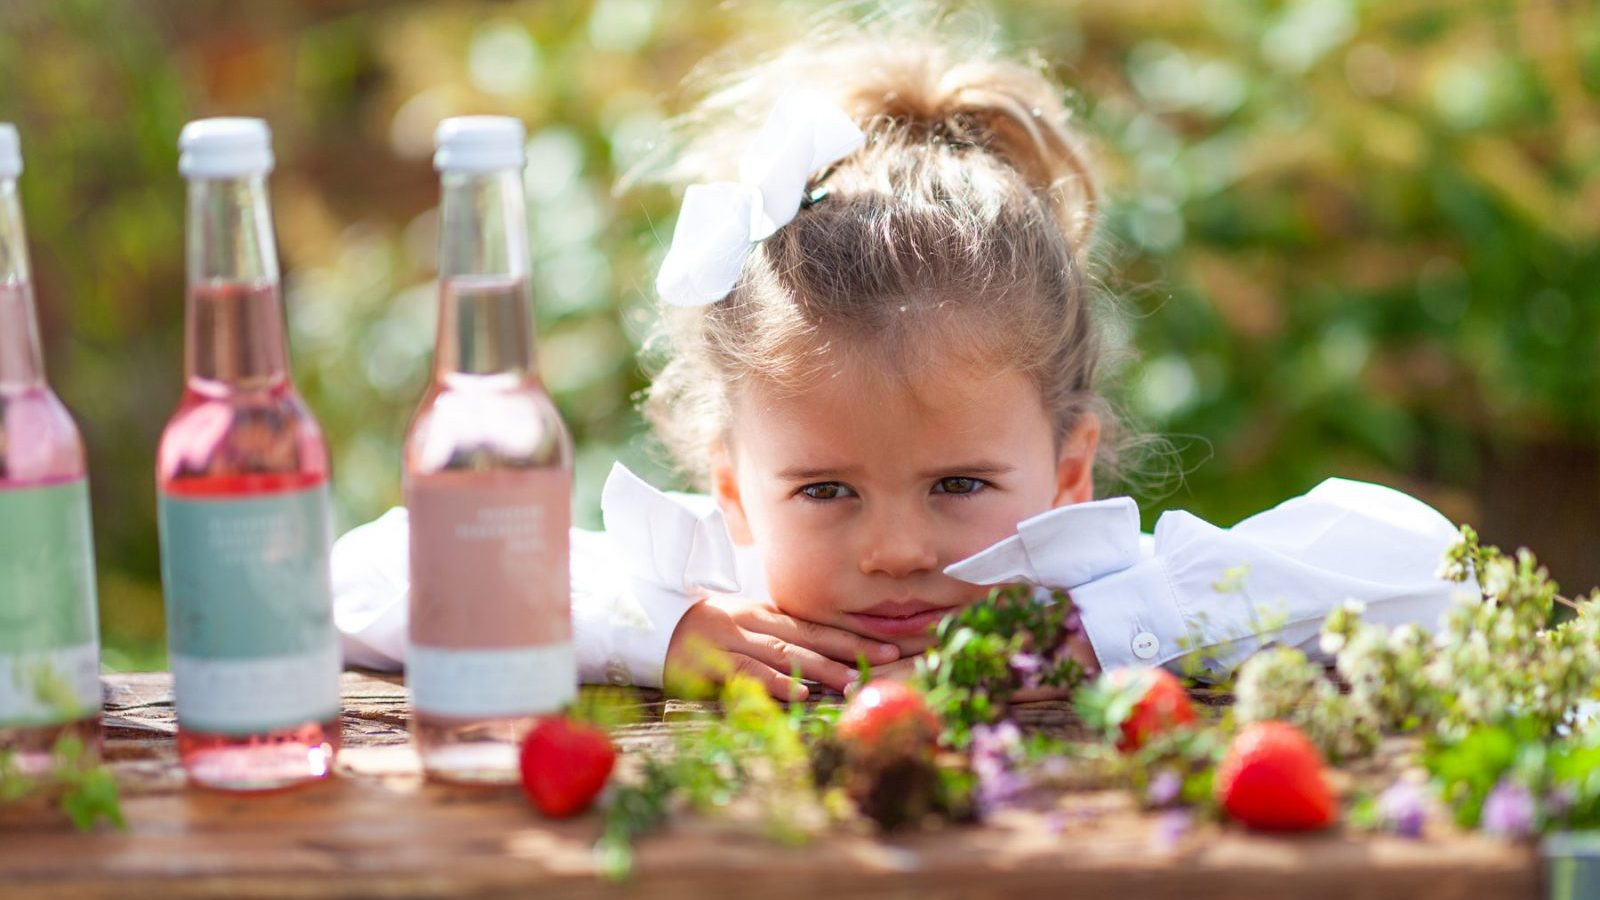 Close up of a young girl looking at three bottles of Tame and Wild Drinks in a garden